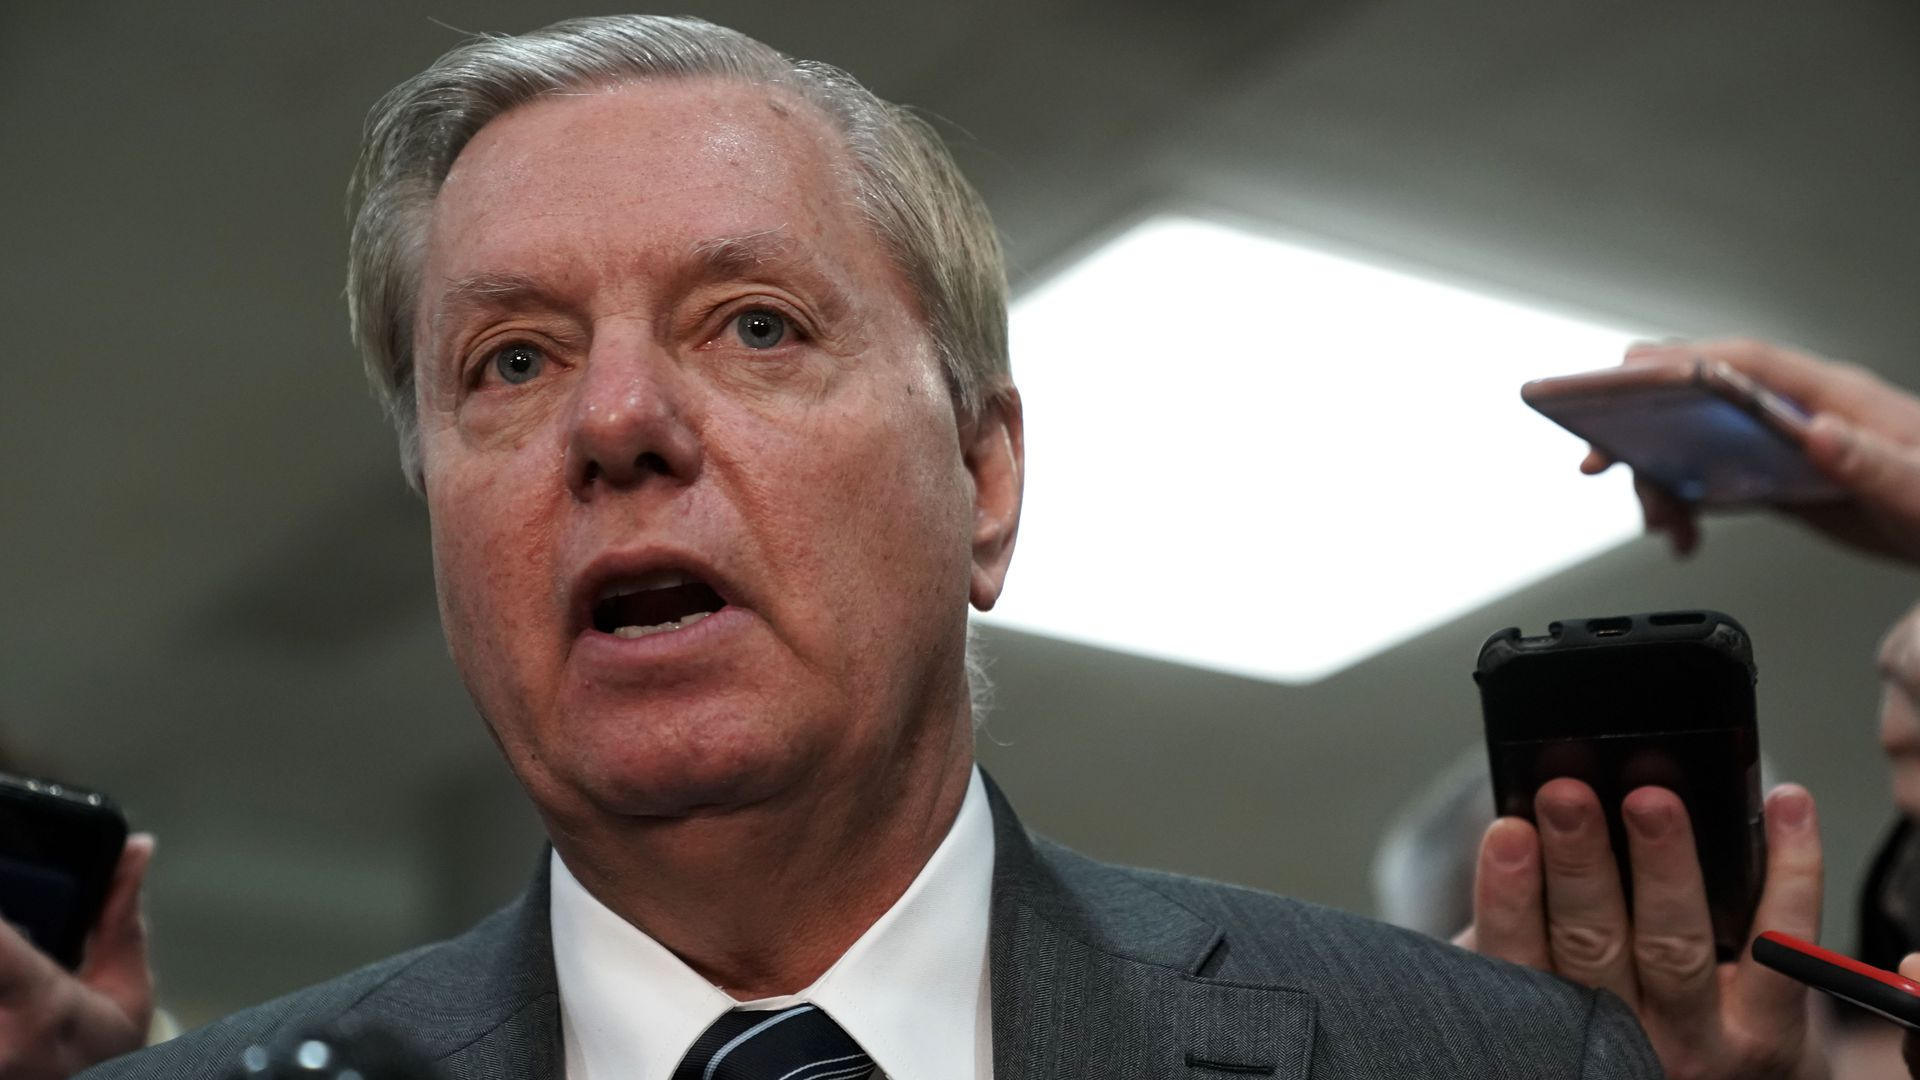 Lindsey Graham has hinted at further questioning of former FBI director James Comey.